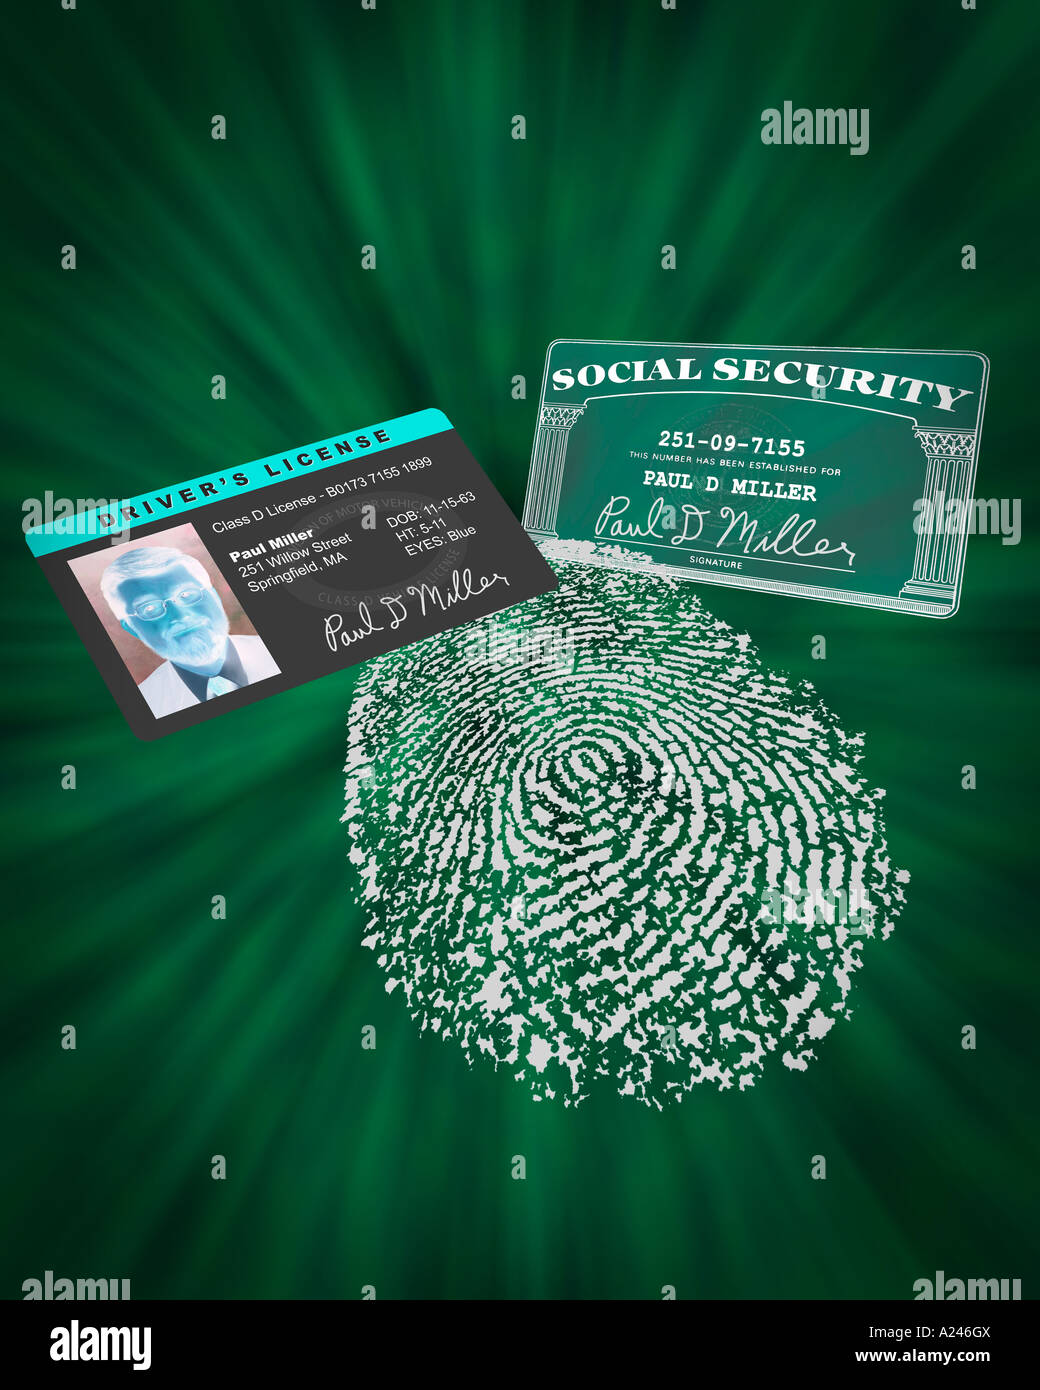 Proof of identity including fingerprint social security card and drivers license licence to prevent identity theft - Stock Image